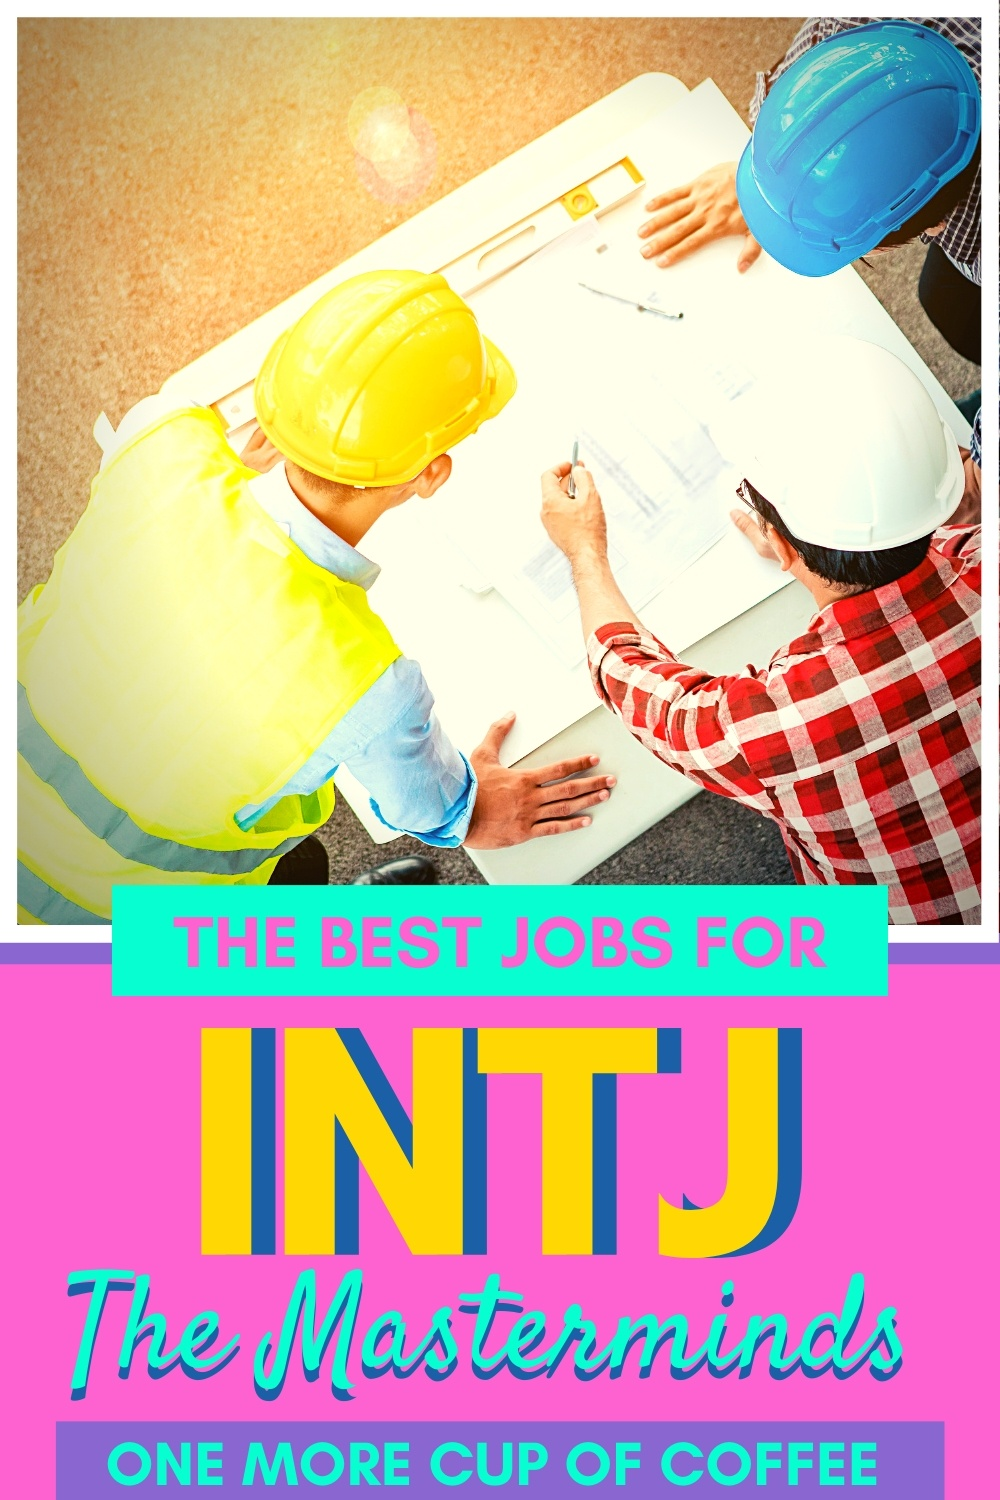 Engineers looking over plans at a job site to represent jobs for INTJ personalities.